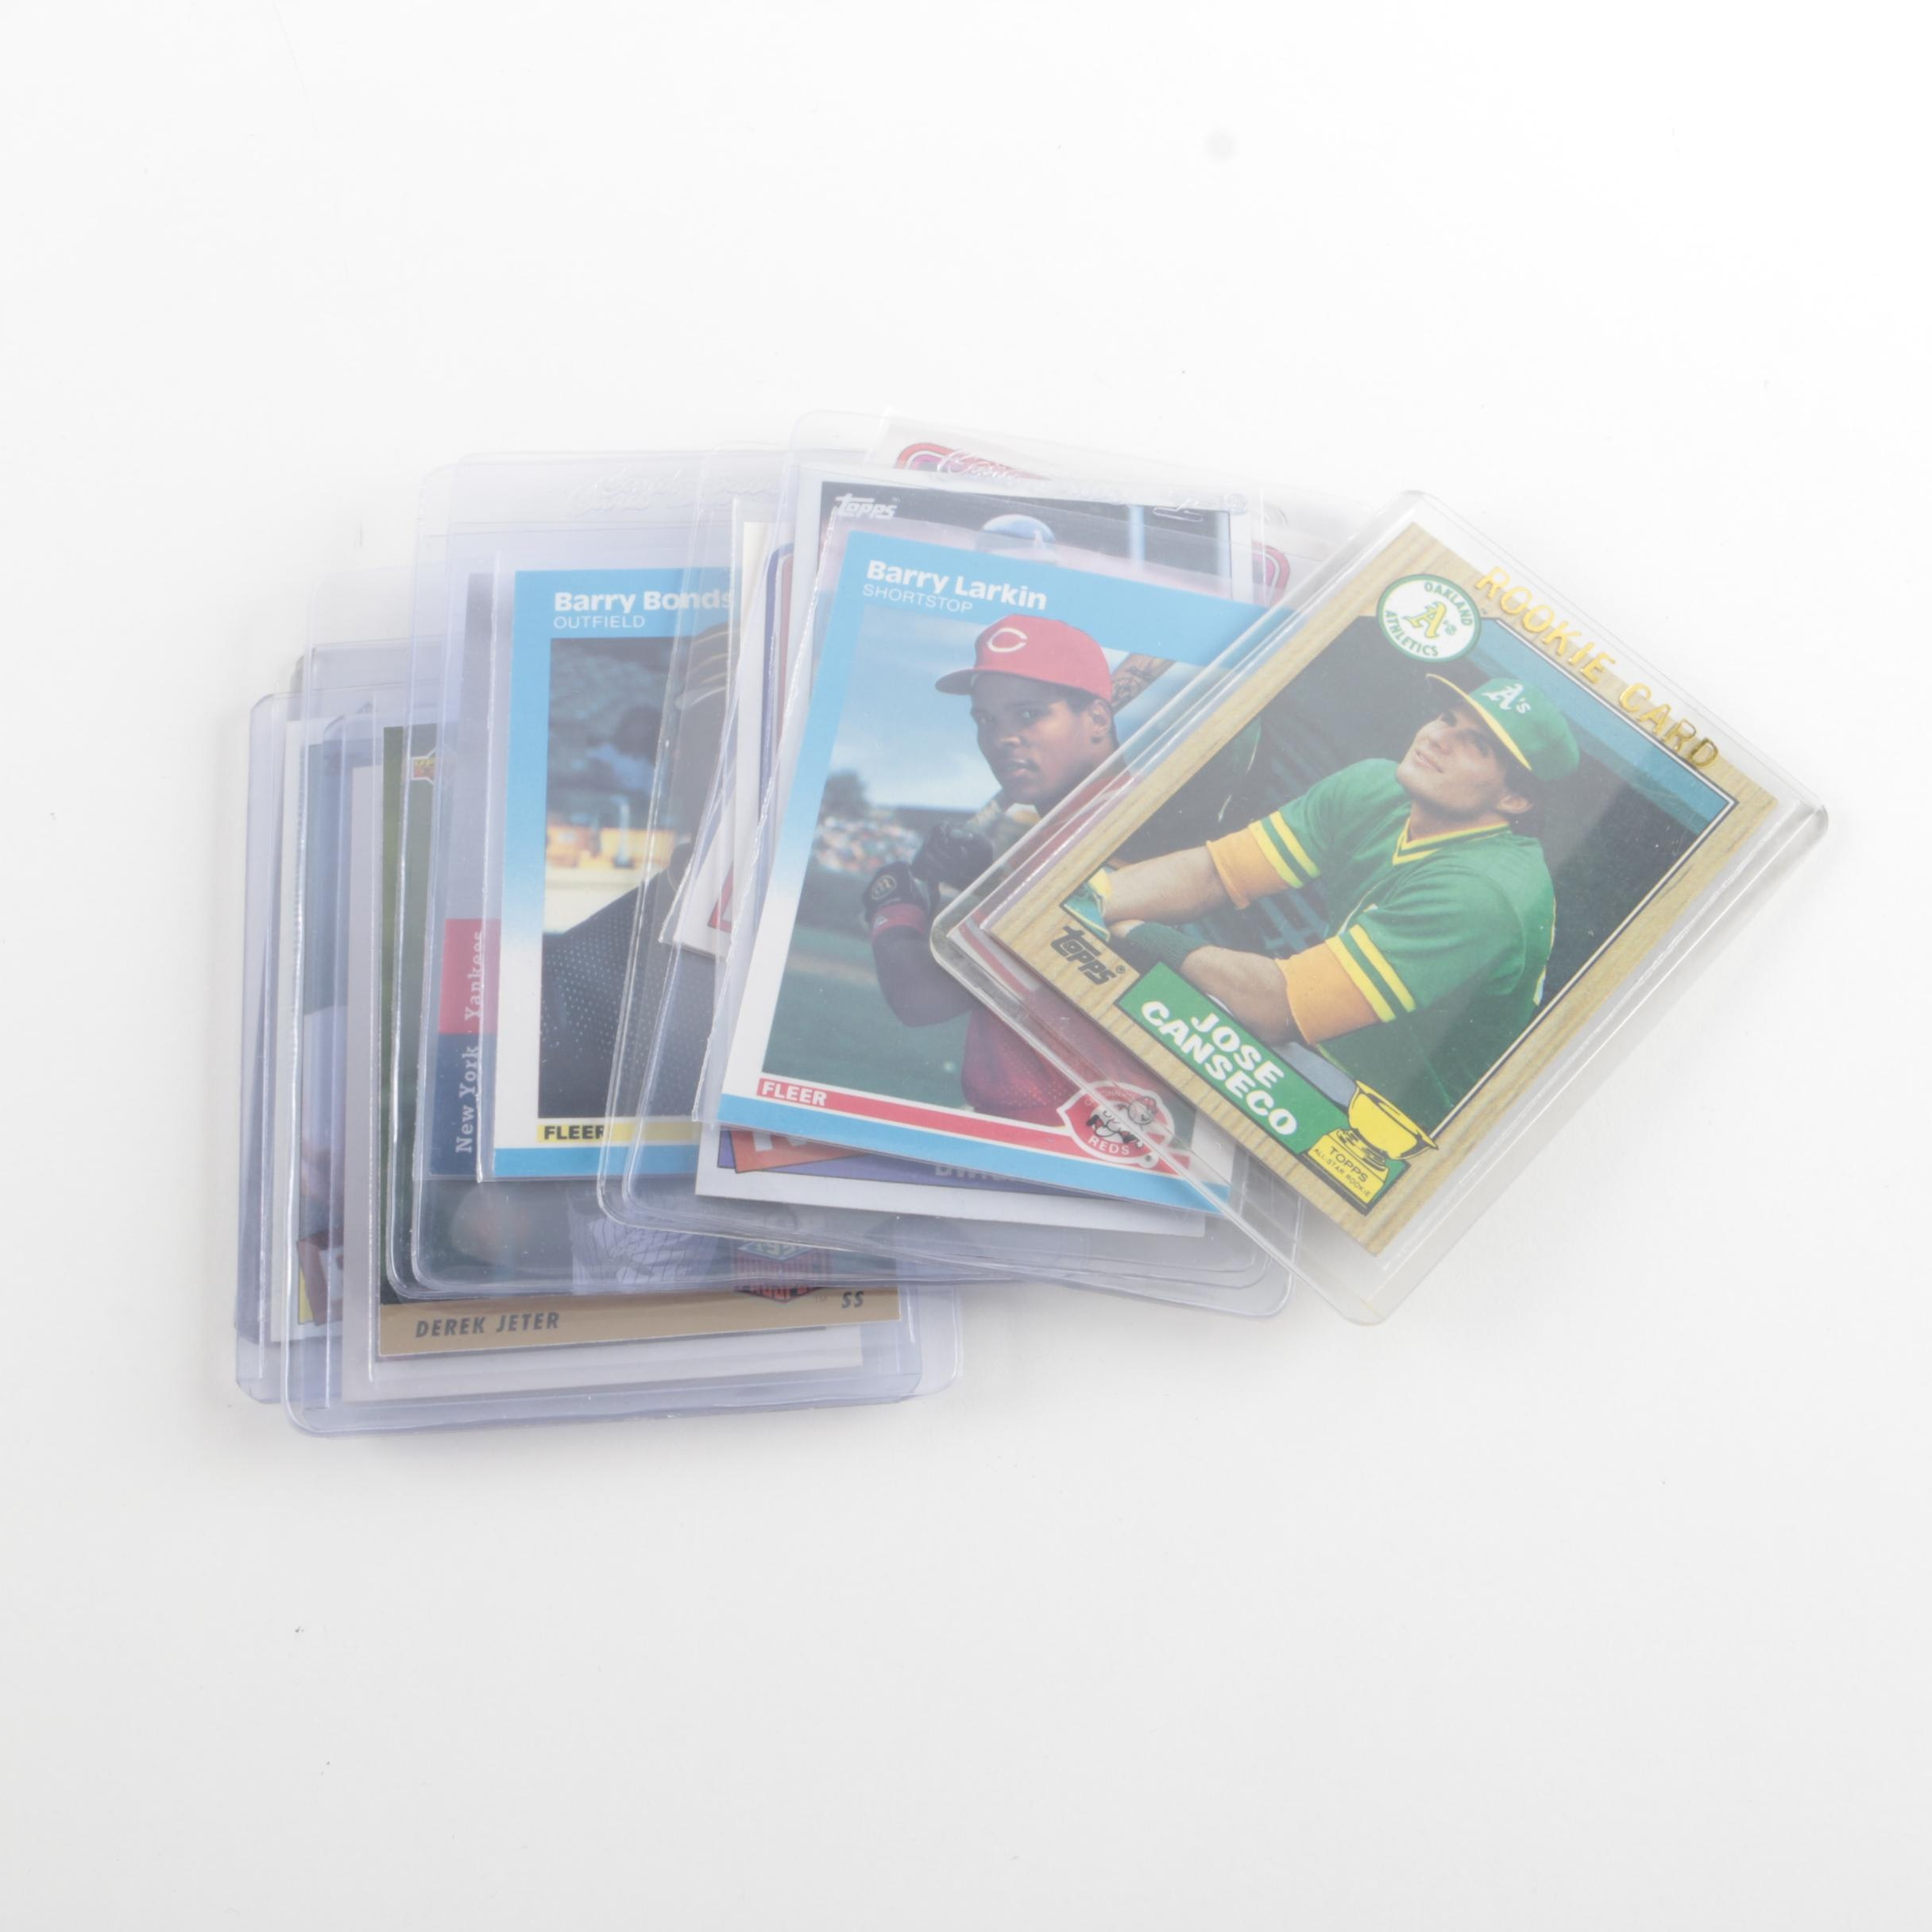 Assortment of Baseball and Hockey Cards Including a Signed Mo Vaughn Card